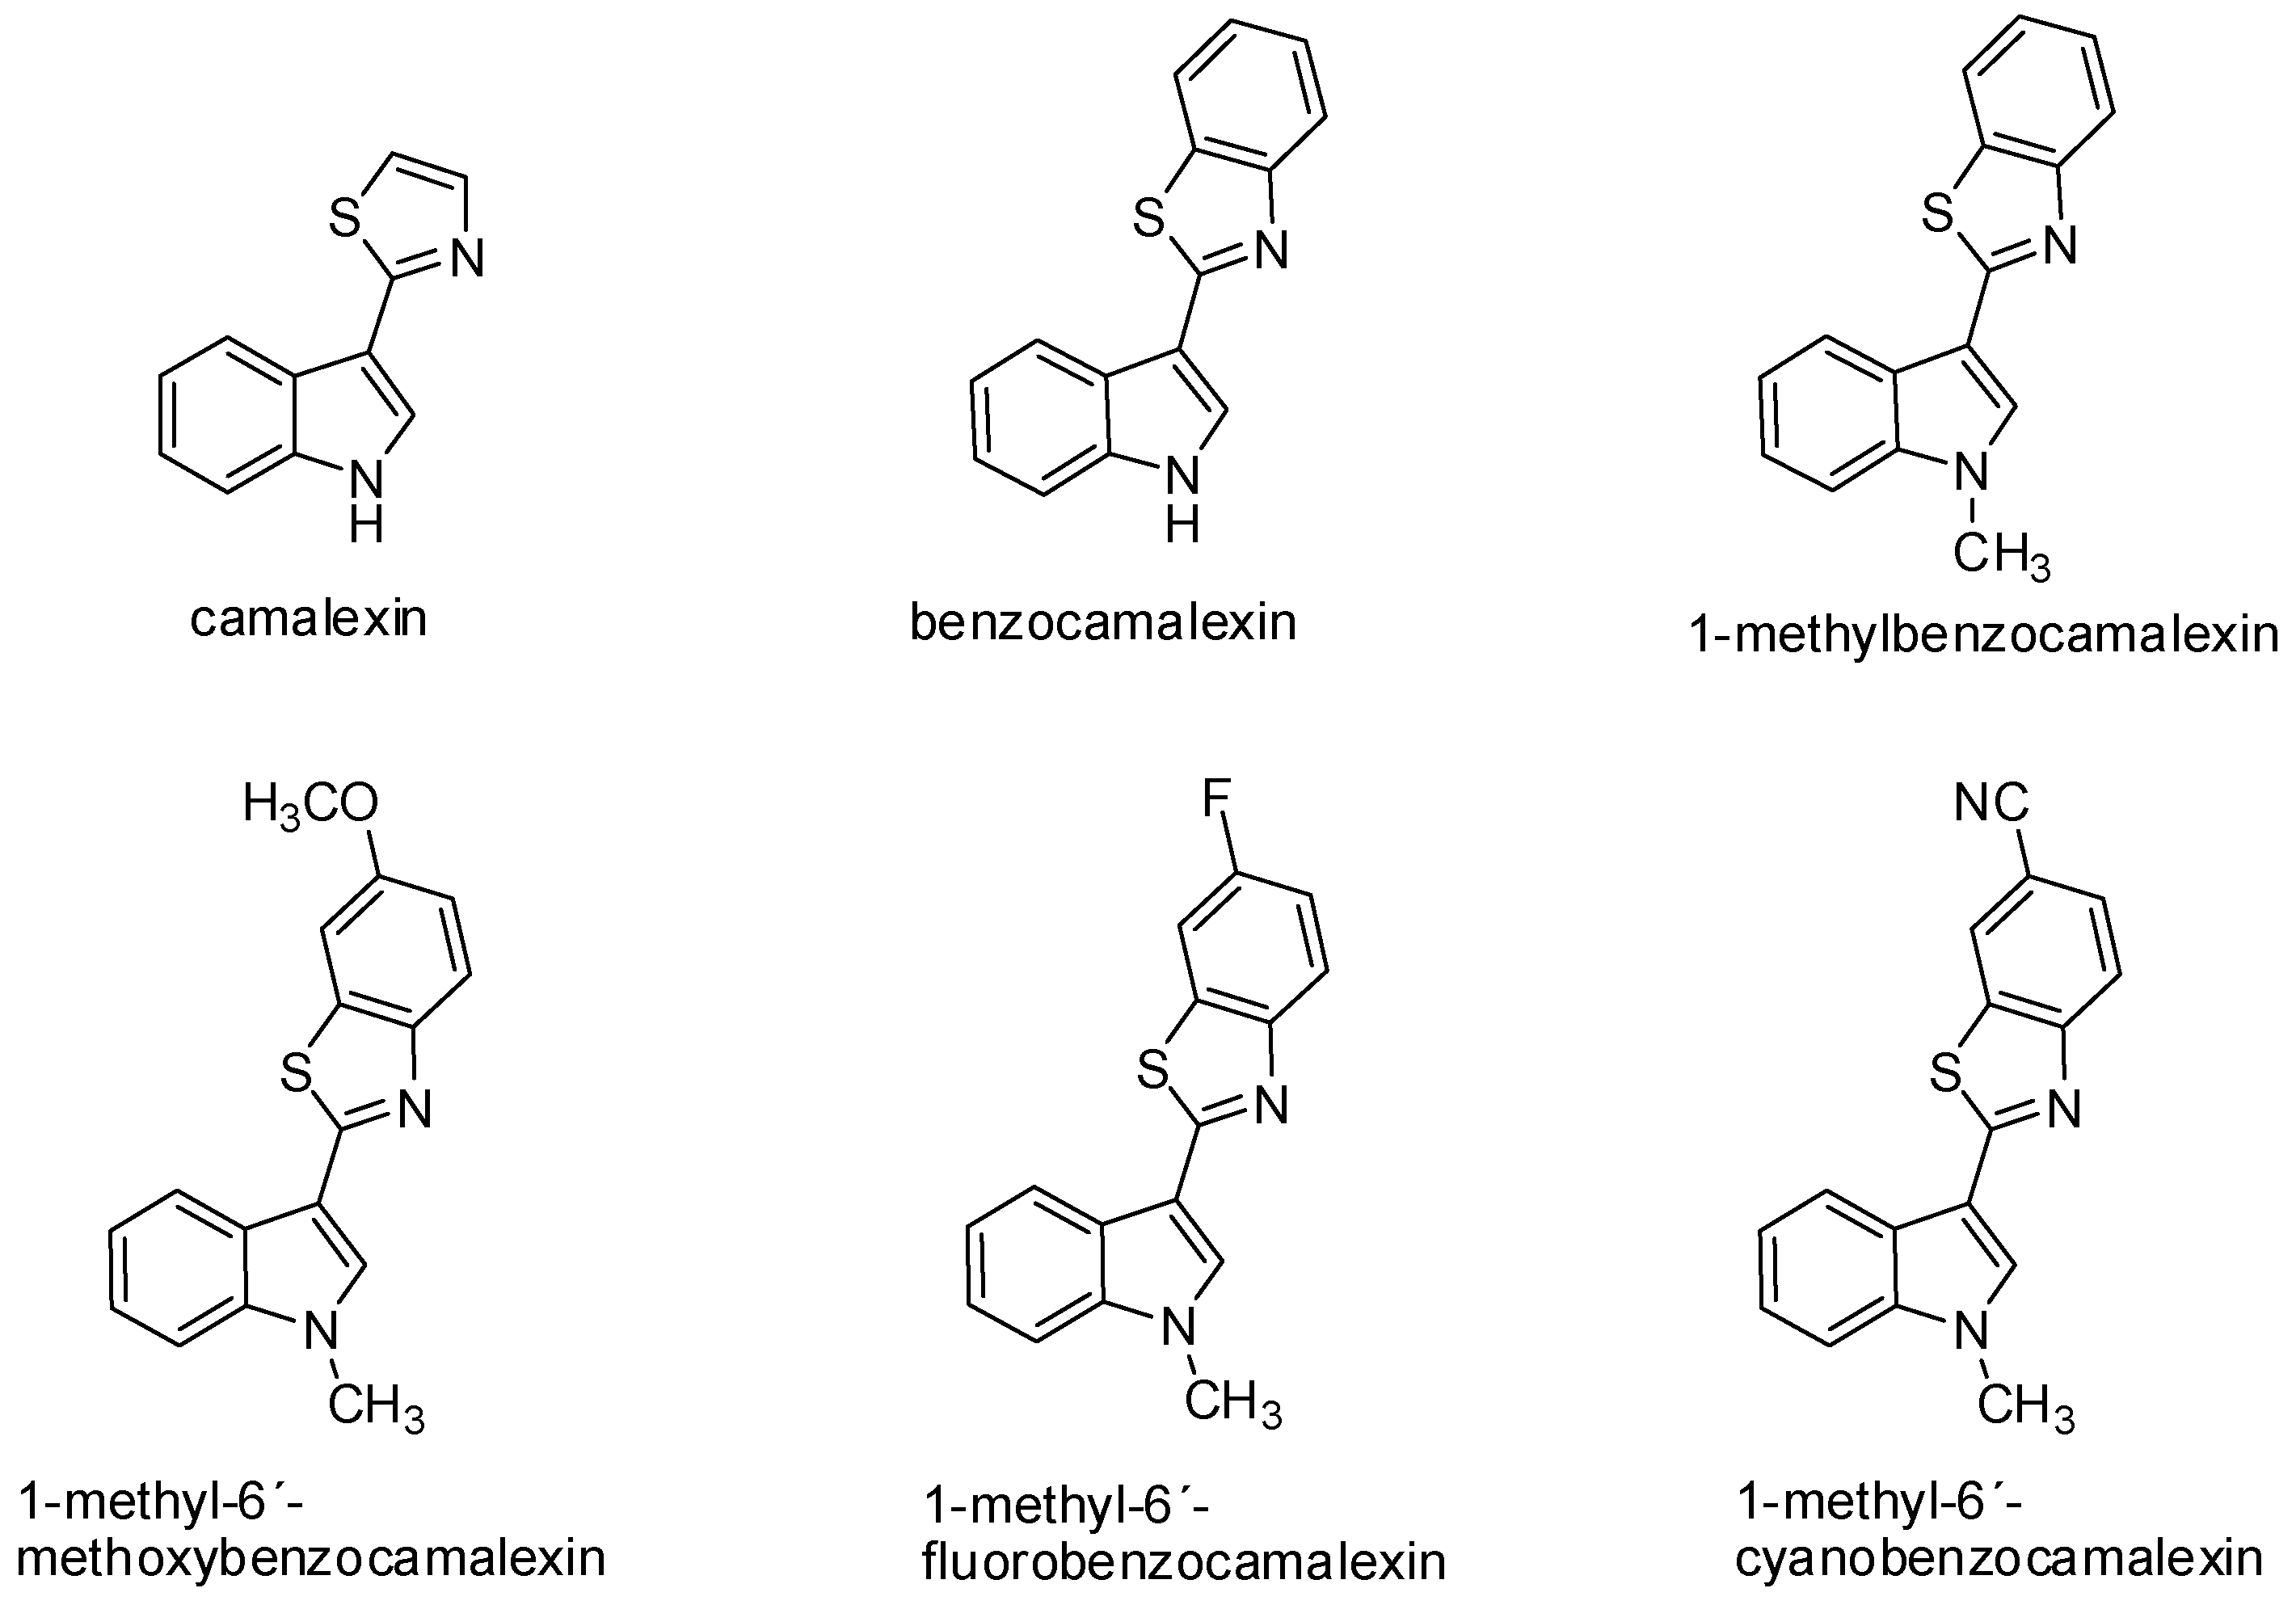 buspirone structure activity relationship of indole